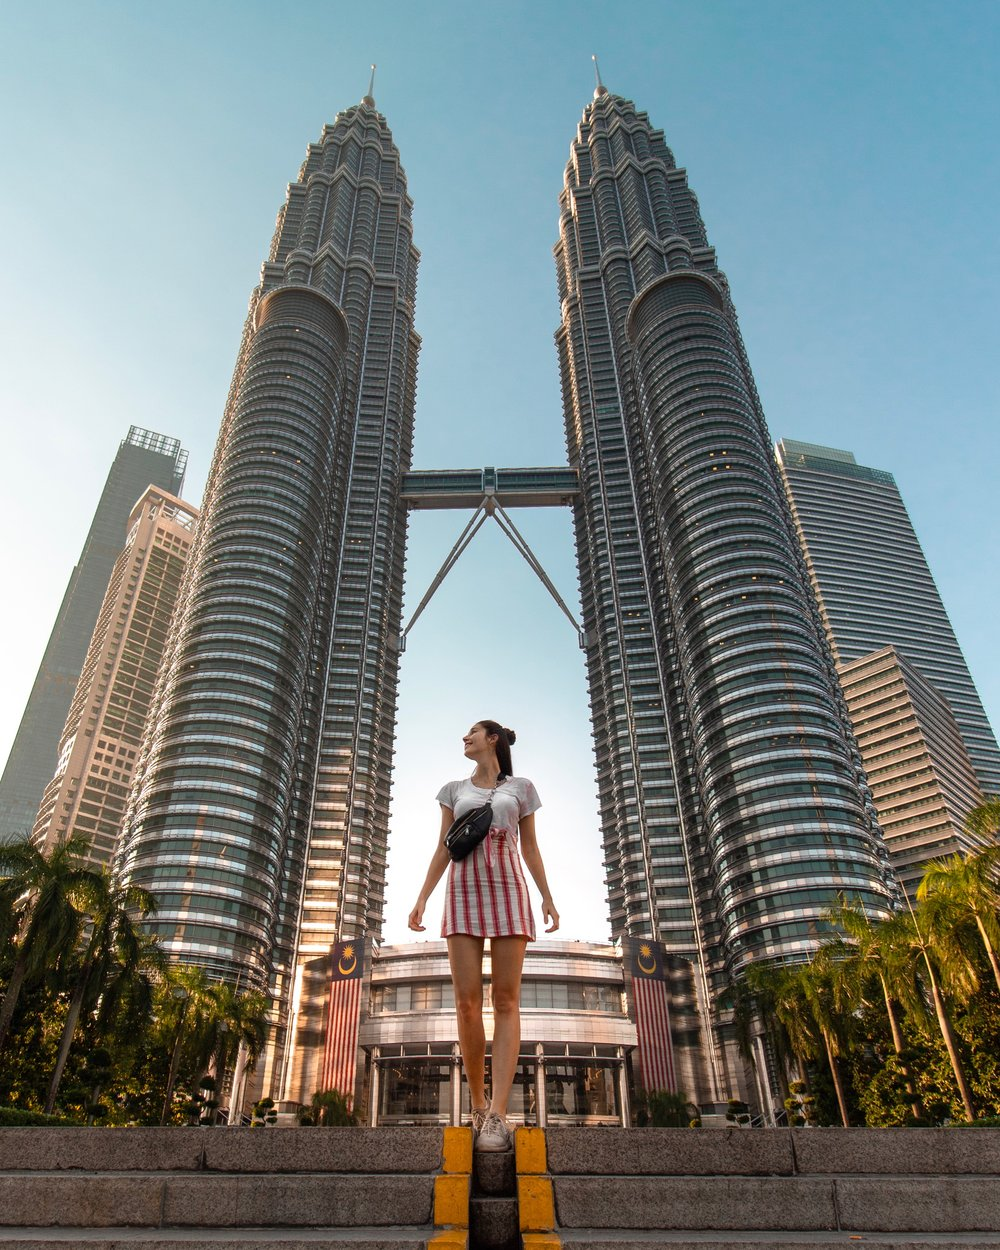 KL Towers - Taken 6:30 AM with my Tripod and my CANON. The day before I checked the location story and saw that this place is awfully crowded at sunset so I decided to go very early - and I had the whole place for myself! - More about   Kuala Lumpur most instagrammable spots here